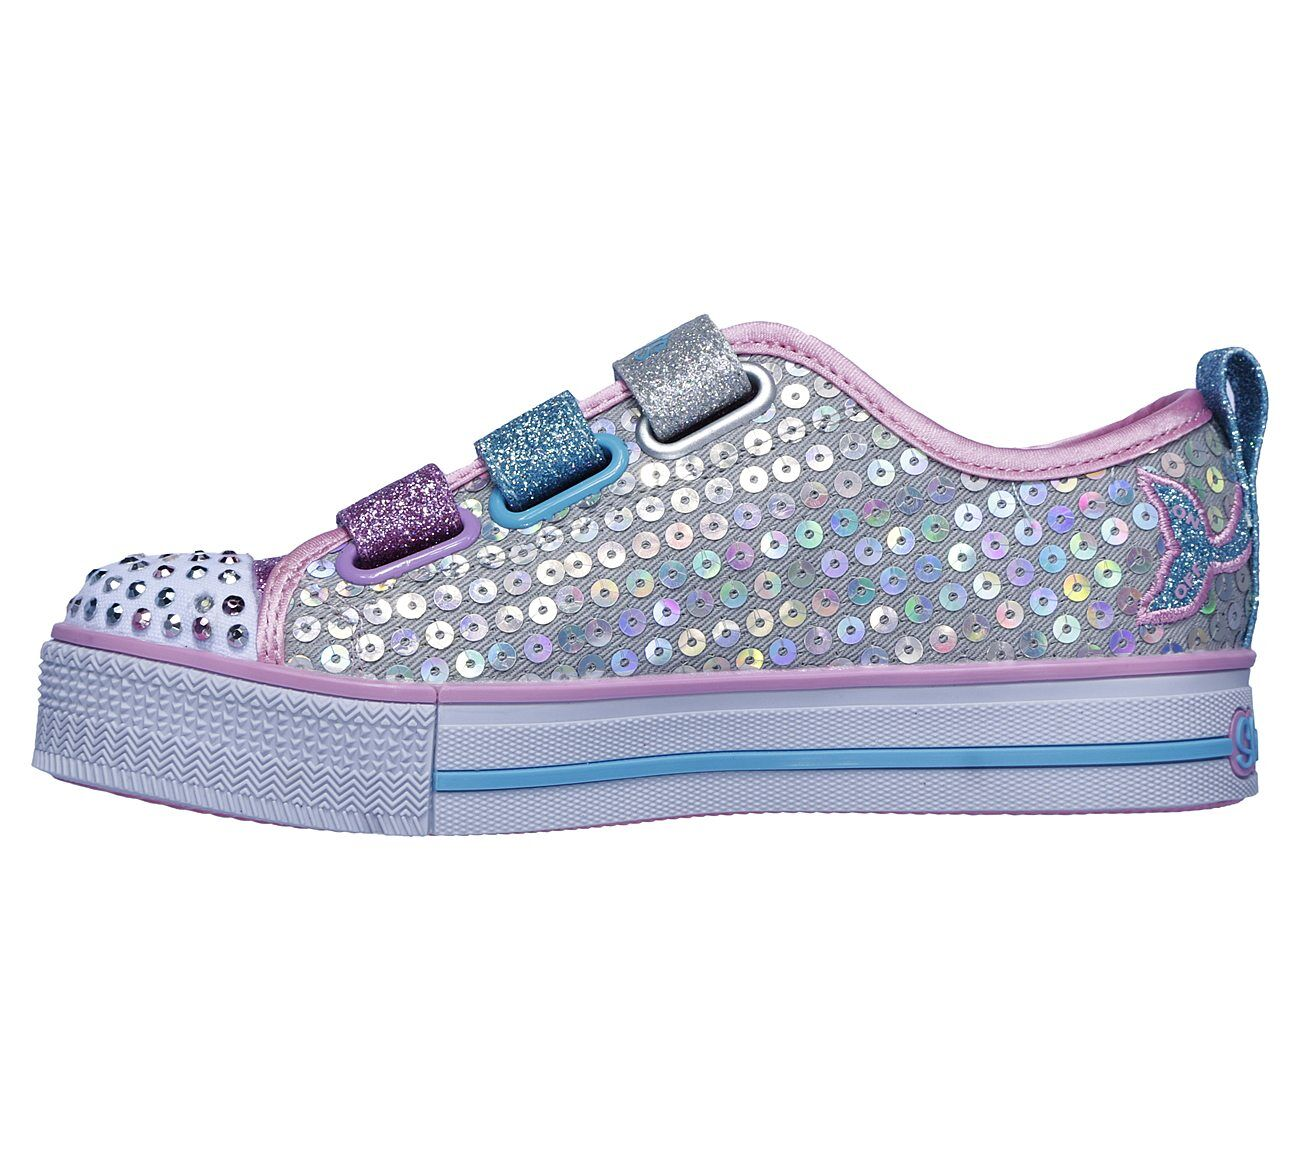 Skechers Twinkle Lite Mermaid Magic Kids Footwear NZ|Girls